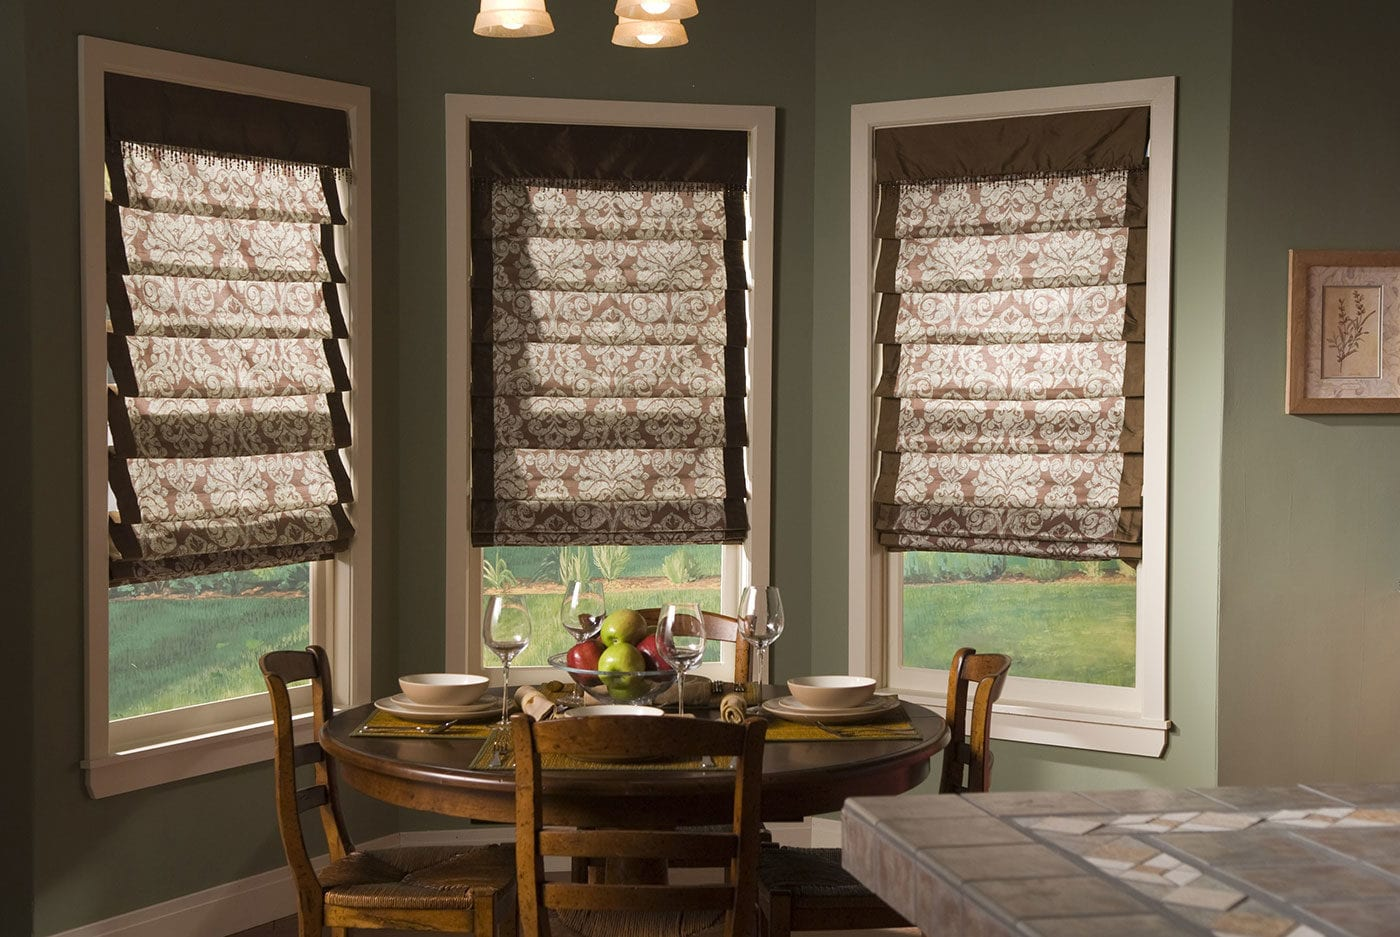 Custom Soft Shades for Fabric Window Treatments Near Chicago, Illinois (IL) Including Horizon Blinds in Nooks